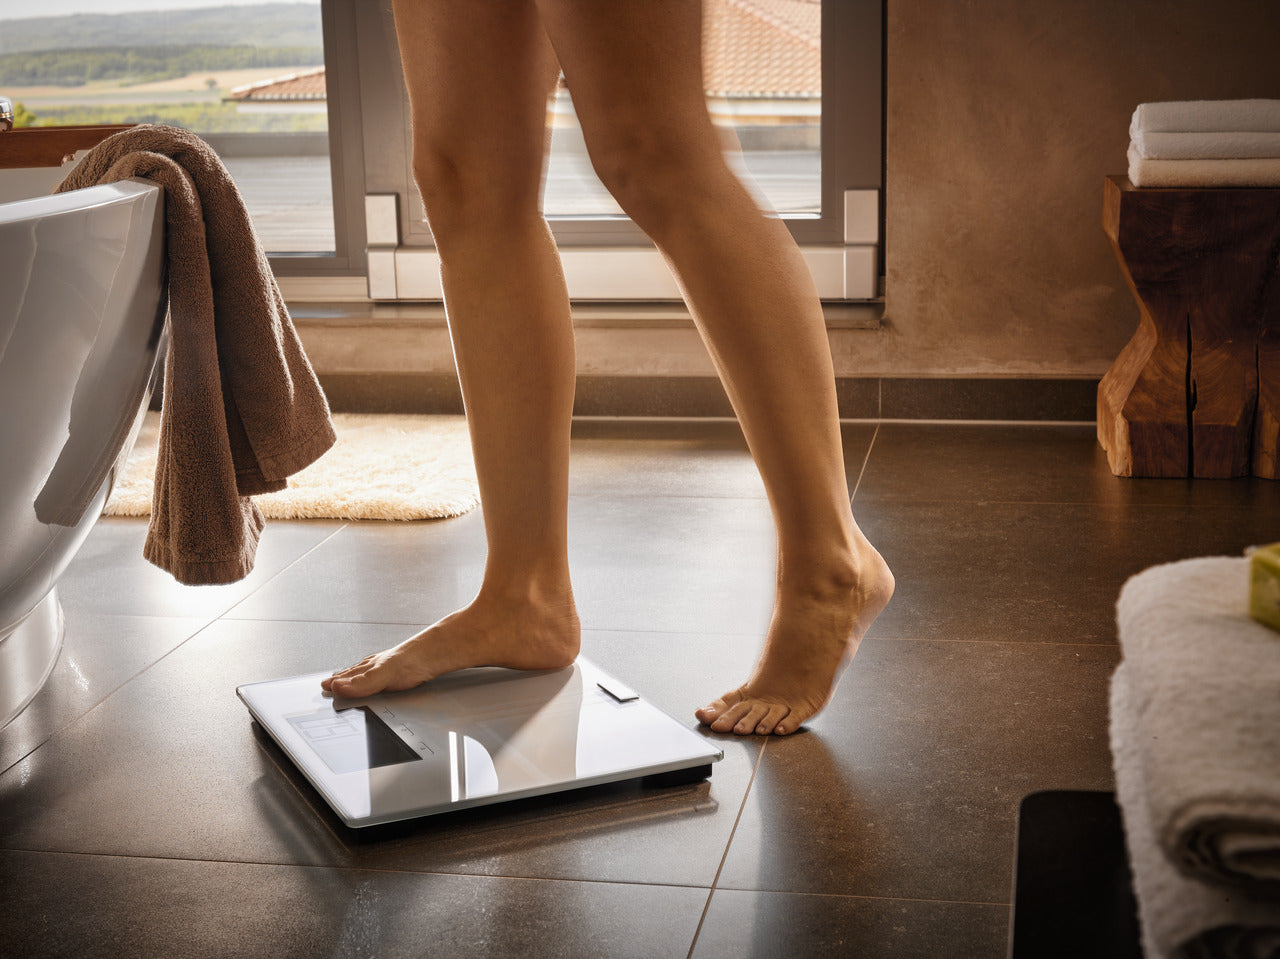 Soehnle Shape Sense Connect 200 with Bluetooth® Bathroom Scale 200kg Capacity S63873